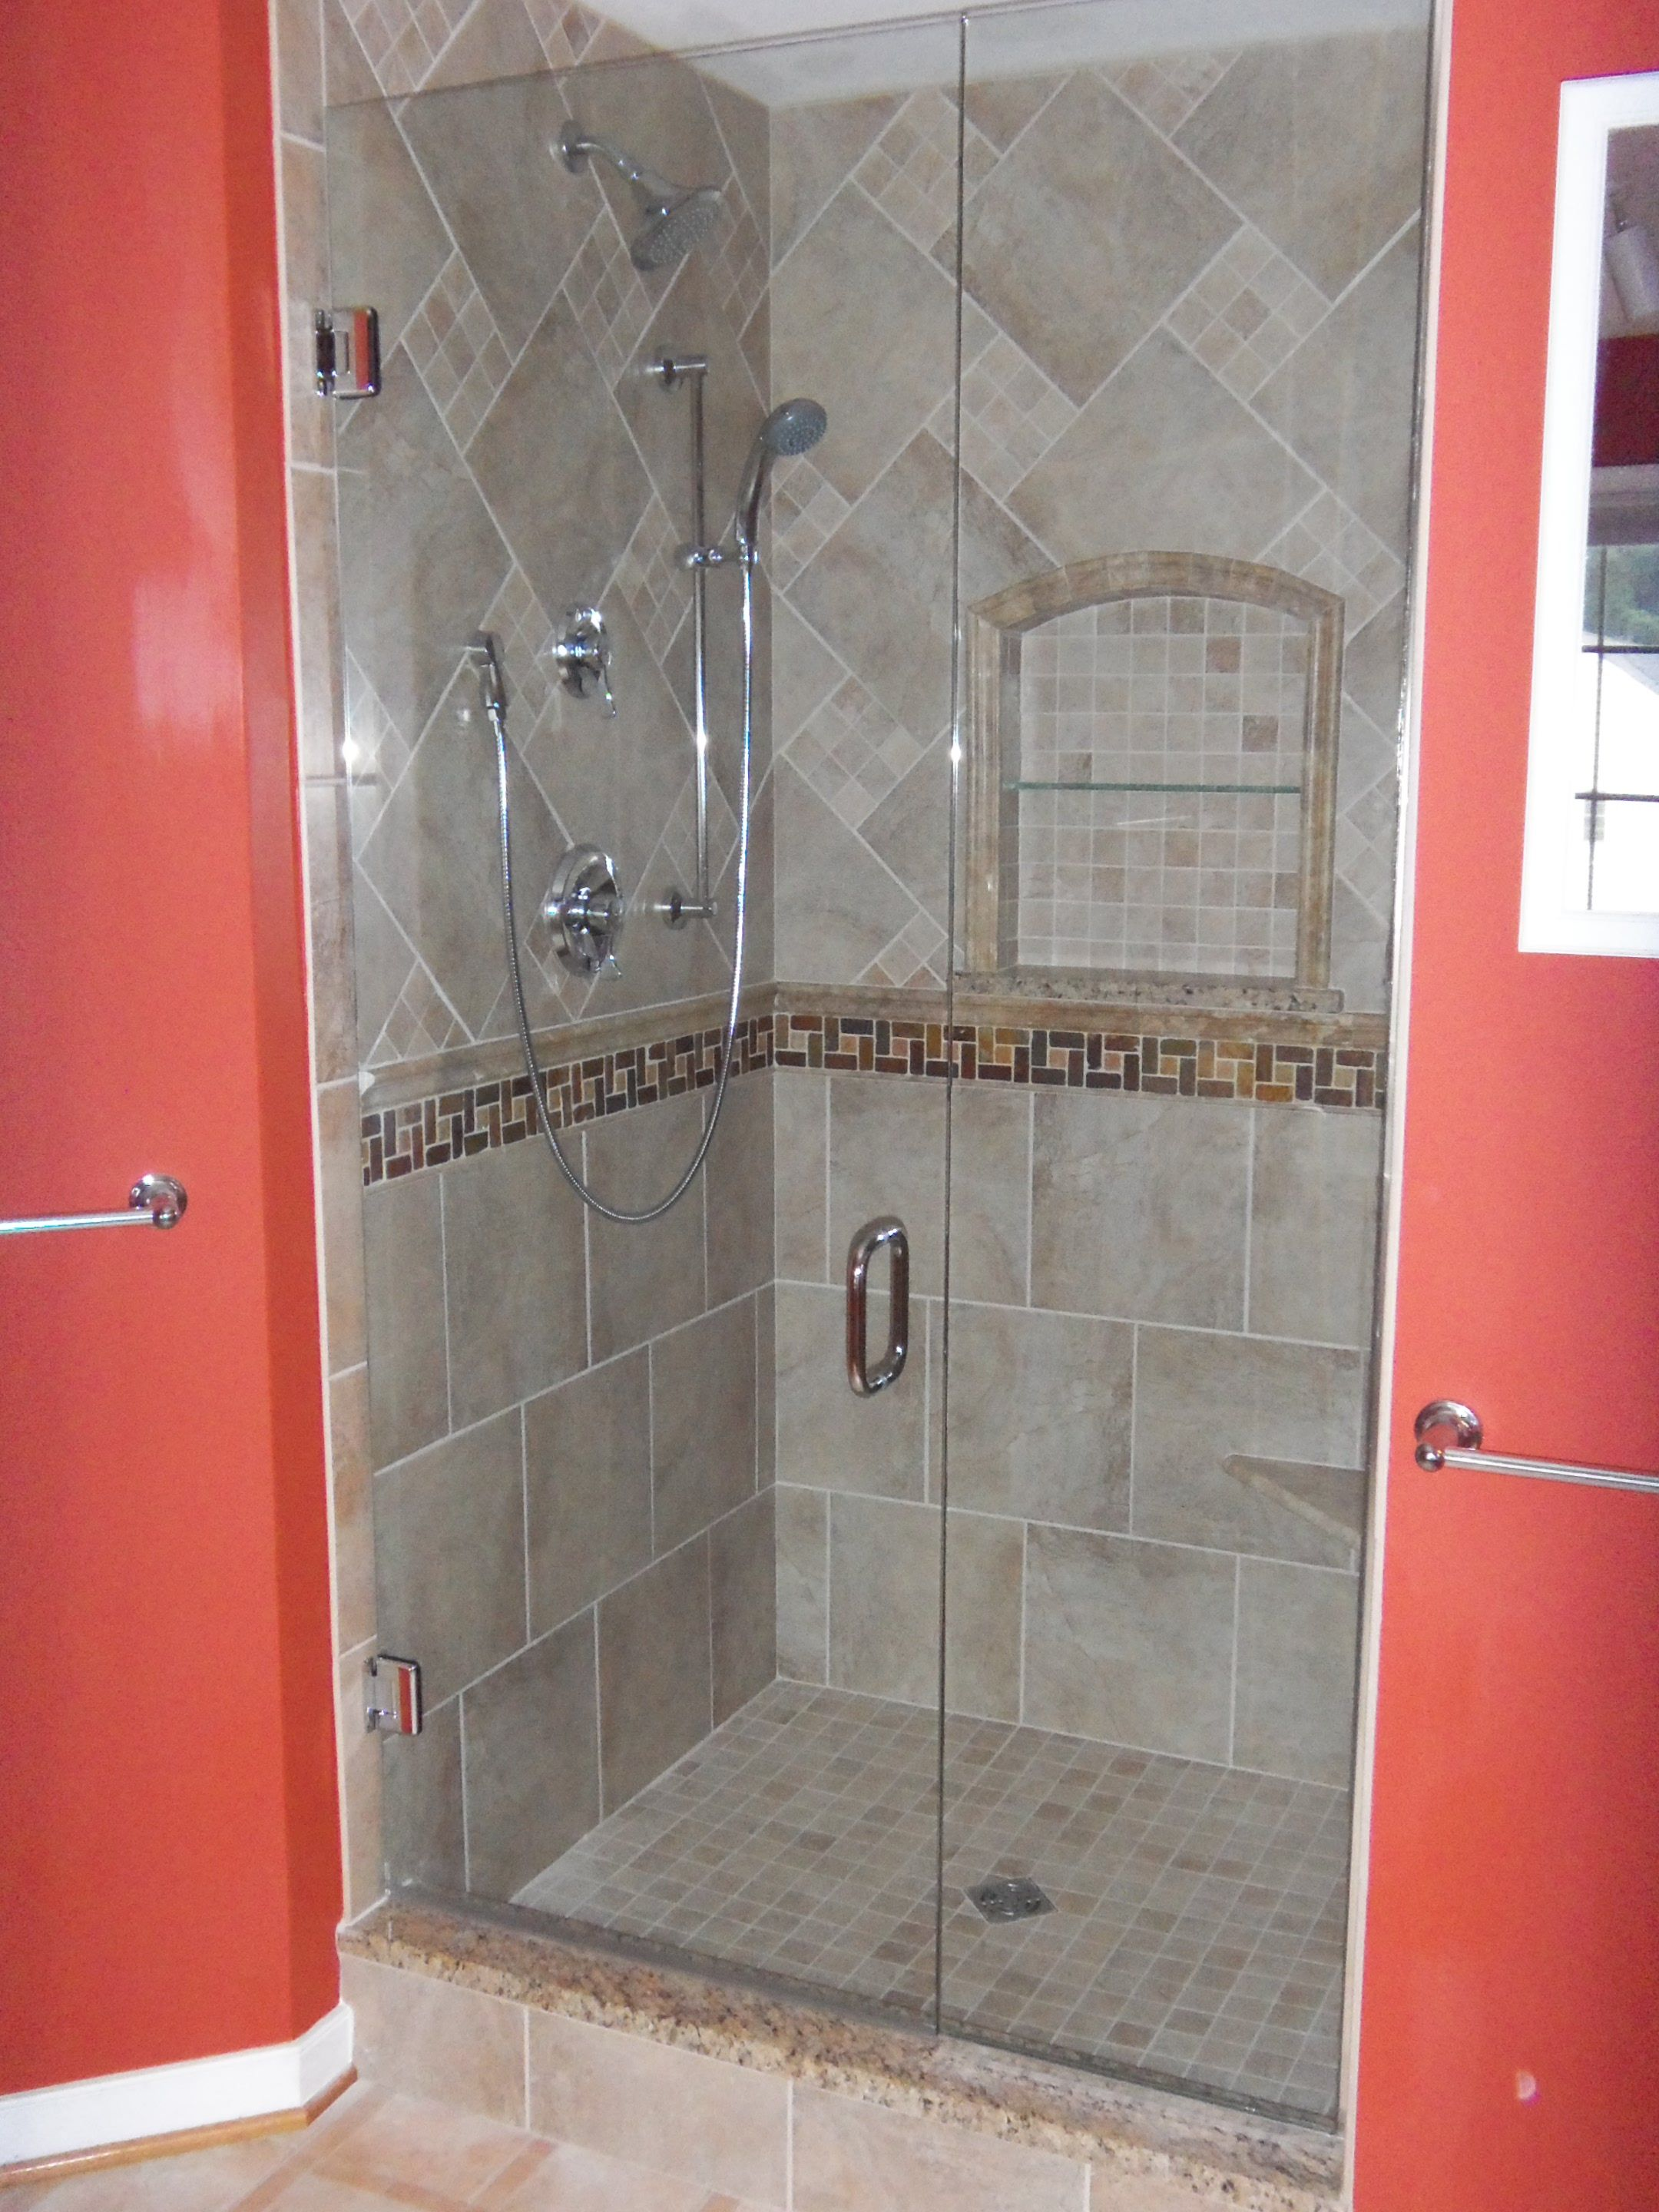 Chic red bifold bathroom door with stainless steel pull out handle also chrome steam head shower Tile shower stalls